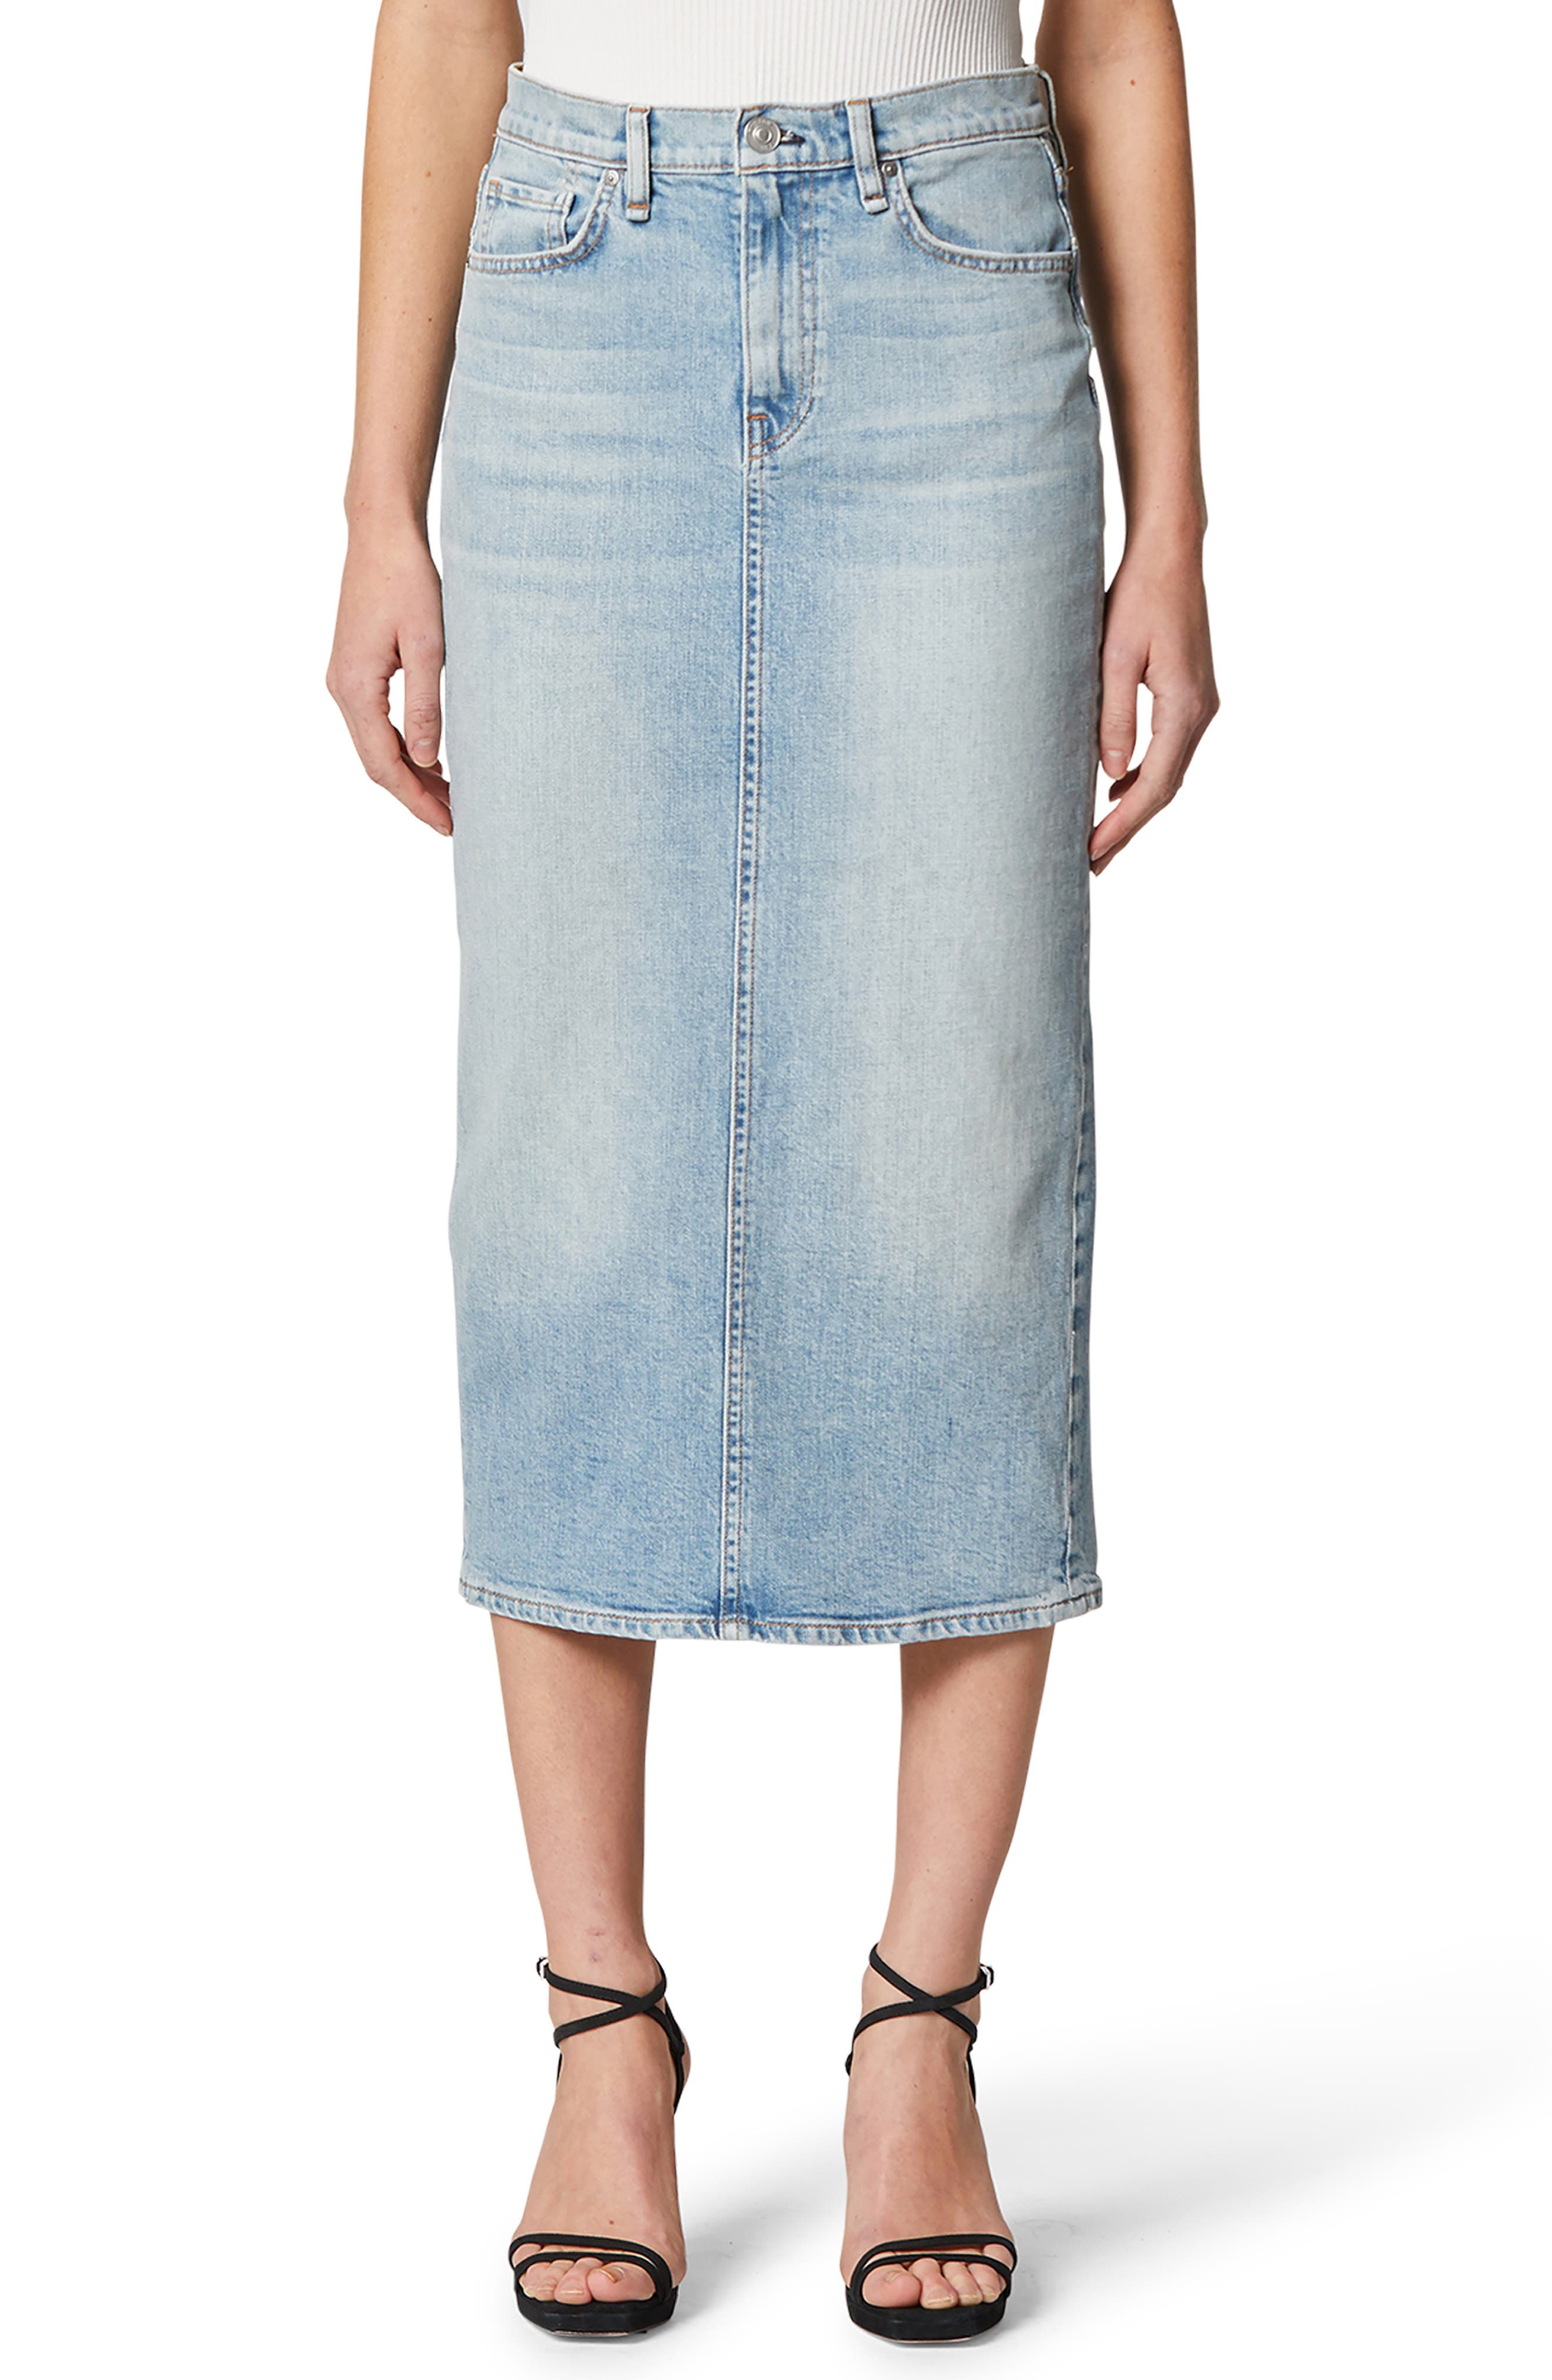 Designed with classic five-pocket styling and signature back pocket stitching, this midi-length denim skirt stands out with a soaring back slit. Style Name: Hudson Jeans Paloma Denim Pencil Skirt. Style Number: 6011103. Available in stores.